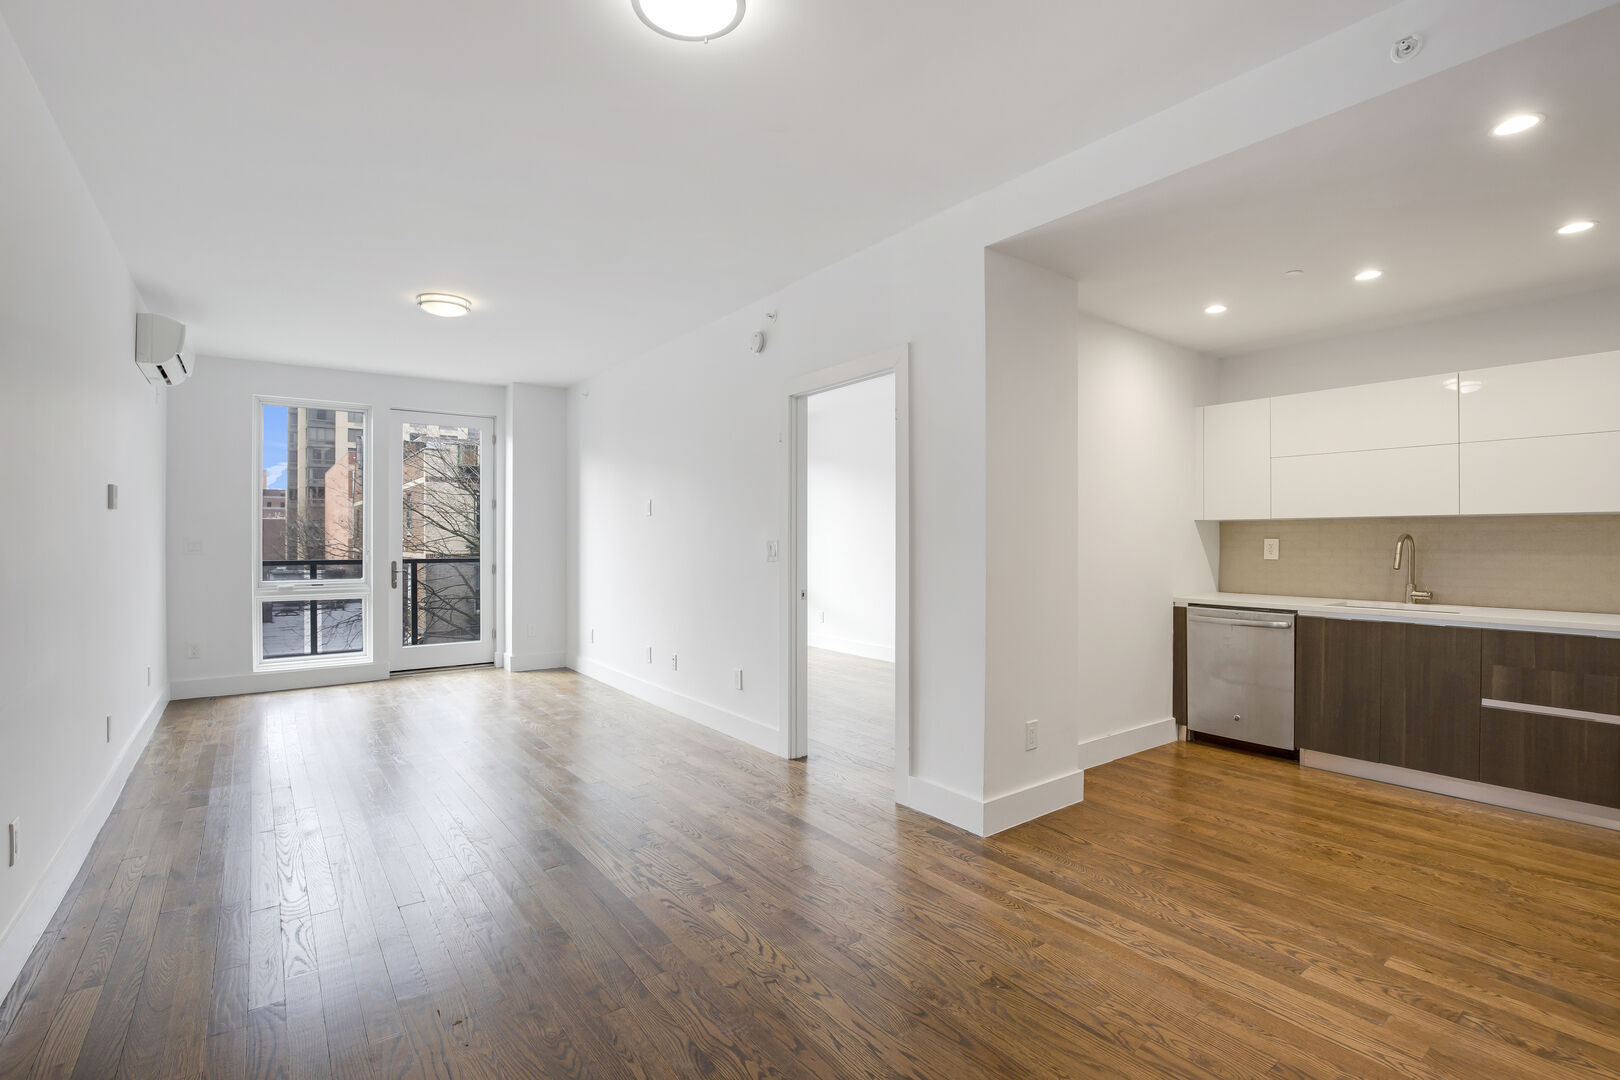 Apartment for sale at 109-19 72nd Road, Apt 4-F